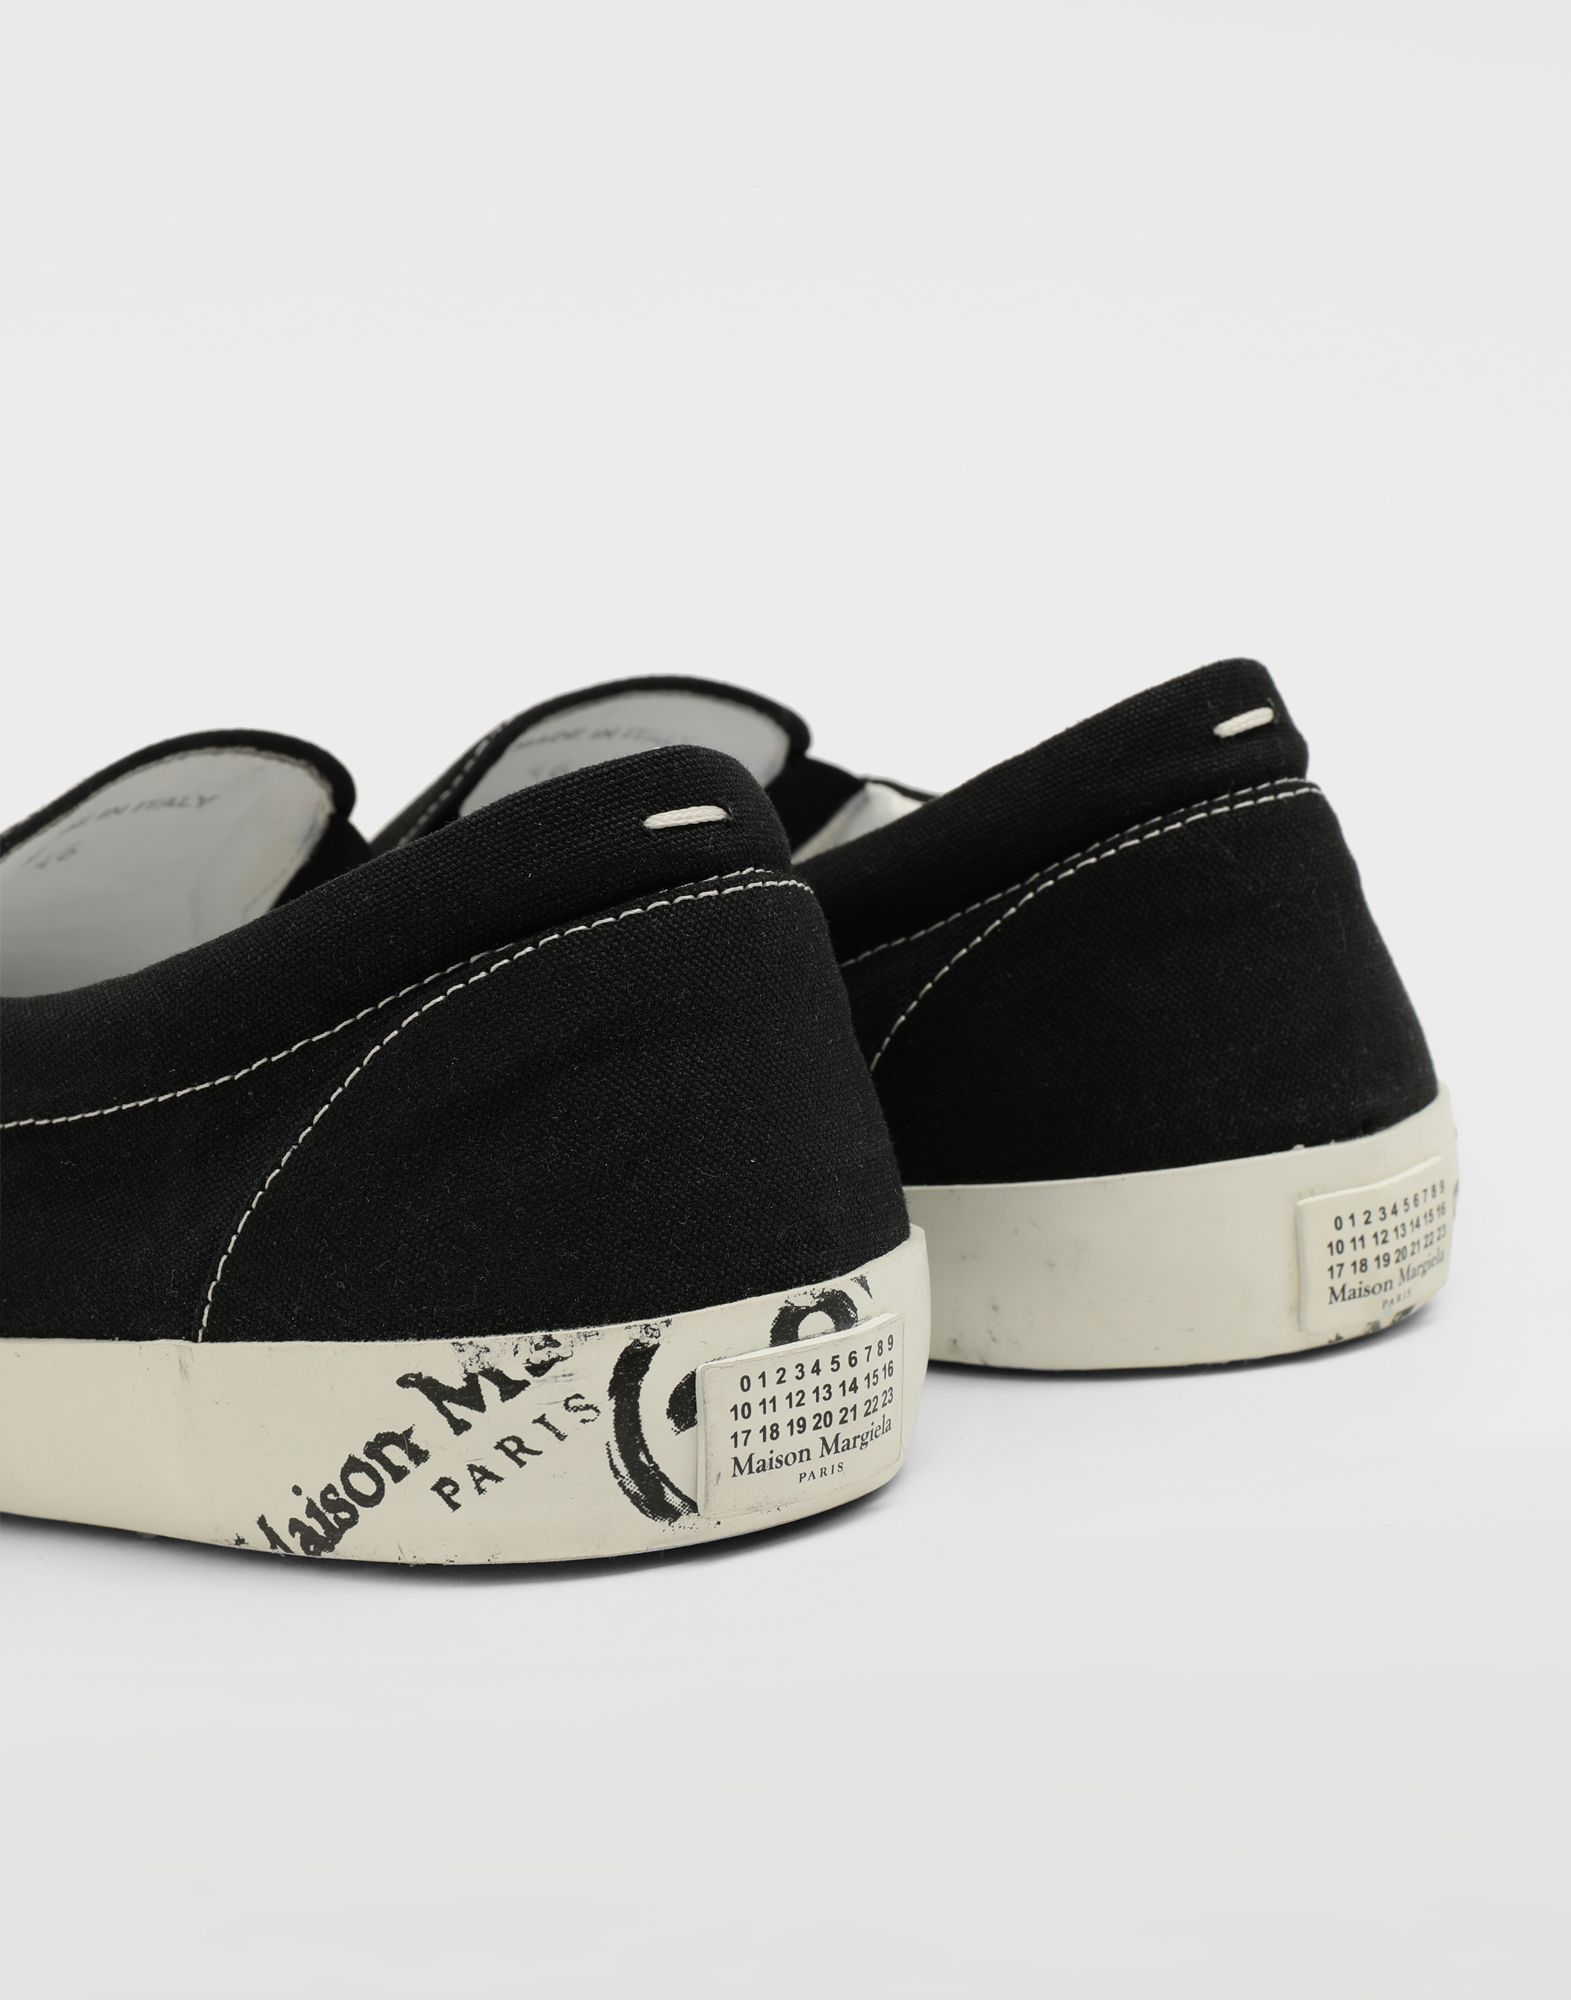 MAISON MARGIELA Tabi slip-on shoes Sneakers Tabi Man a